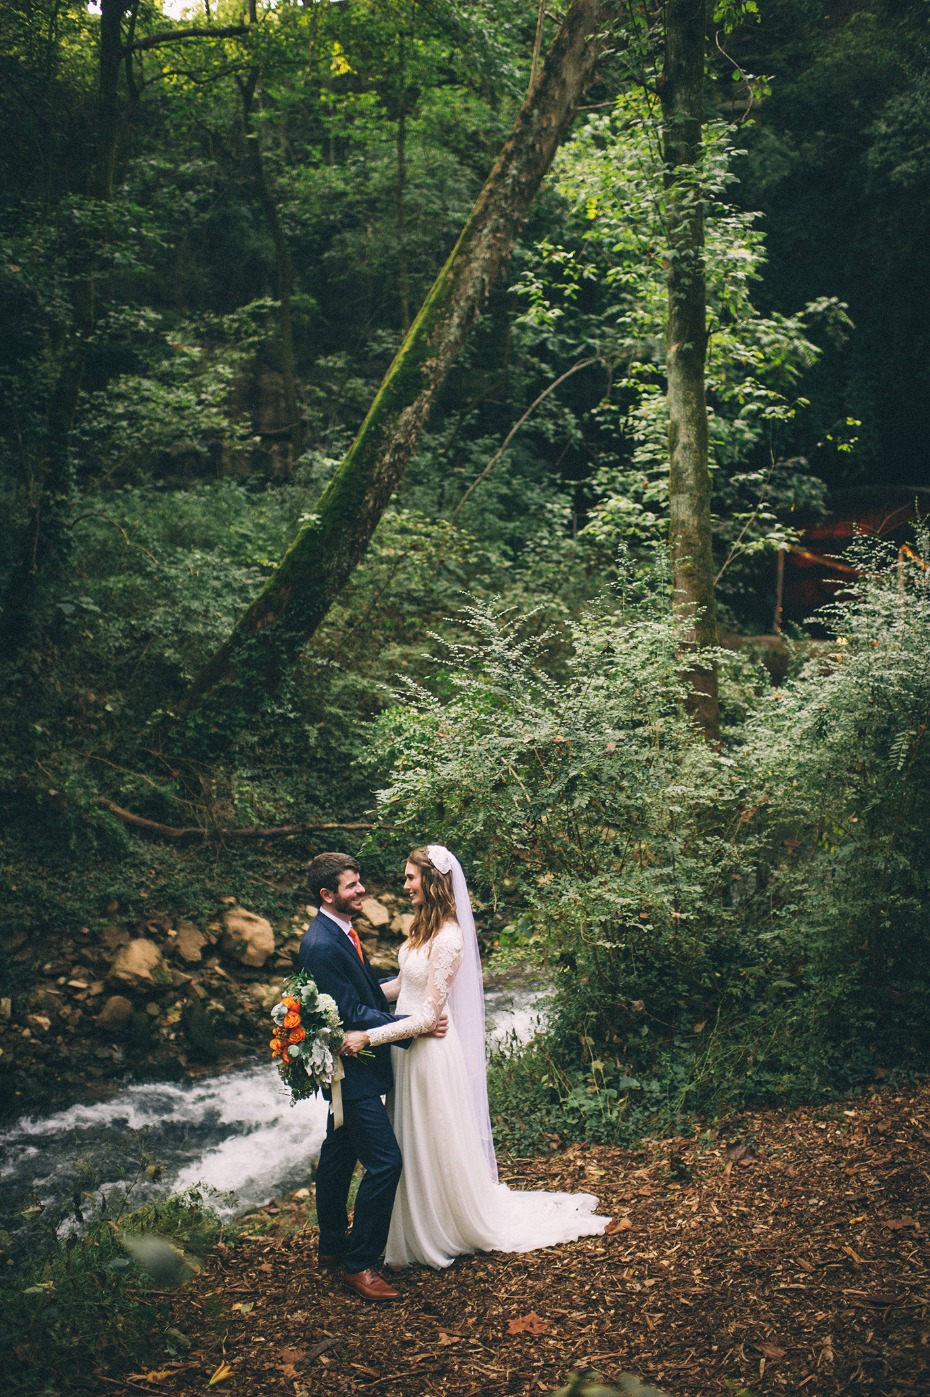 Woodsy wedding at Lost River Cave